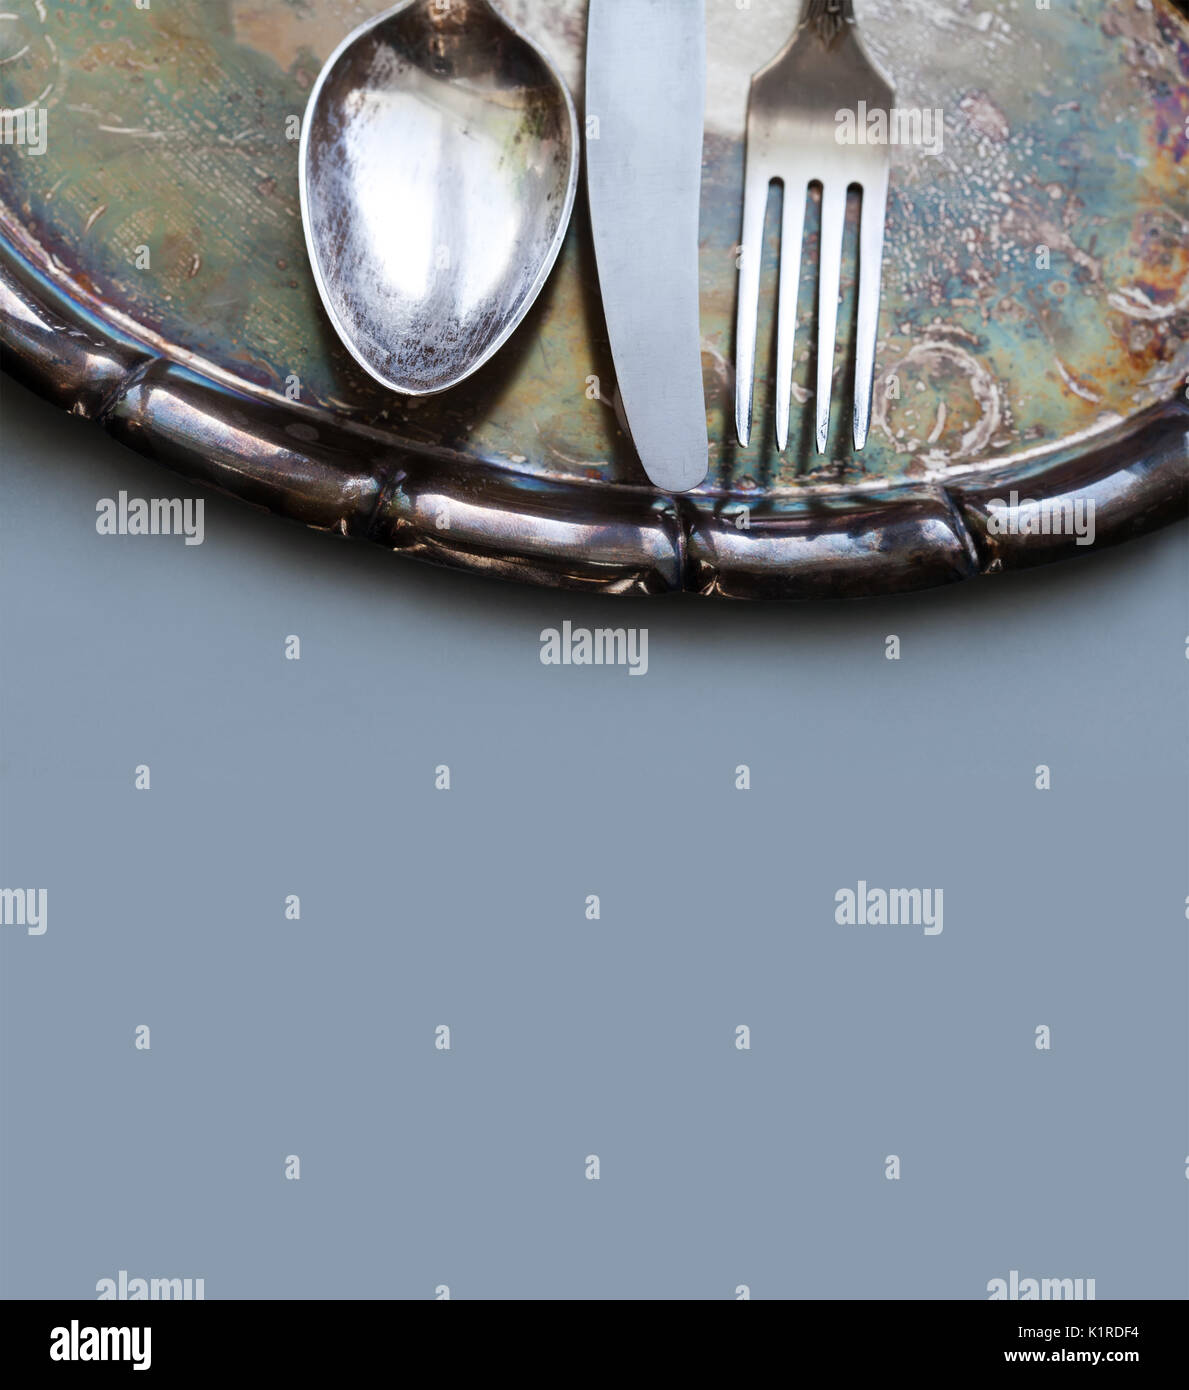 Kitchen tableware set on the vintage silver tray. spoon, knife and fork. gray paper background. Soft focus. - Stock Image